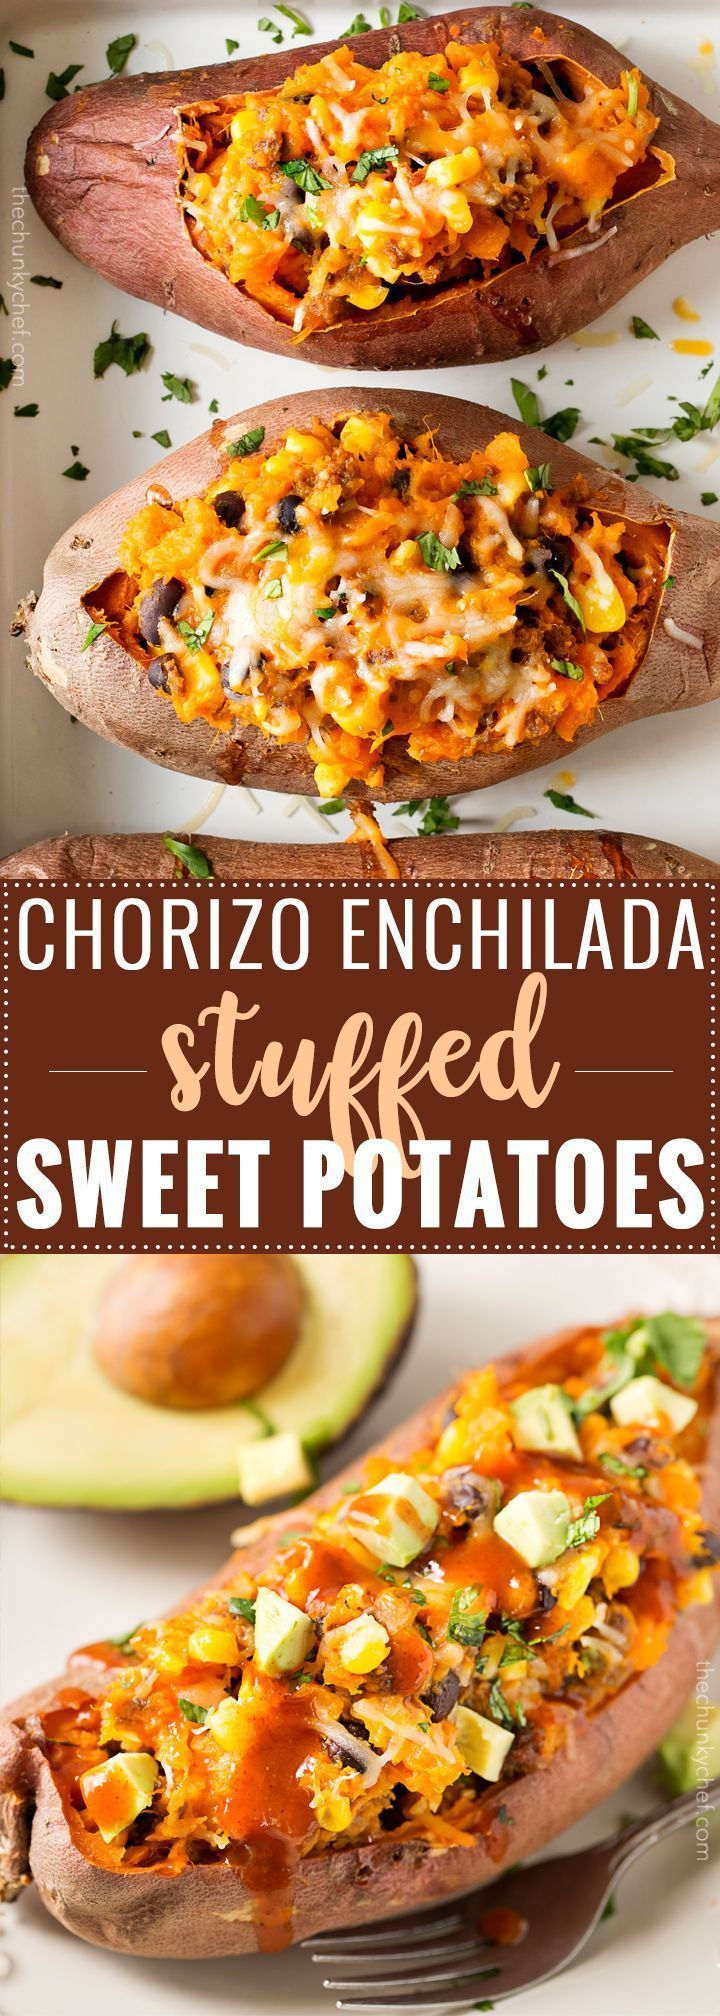 Chorizo Enchilada Stuffed Sweet Potatoes | Mexican flavors come together in these stuffed sweet potatoes, for a meal that's healthy and incredibly easy to prep ahead for a stress-free dinner! | http://thechunkychef.com